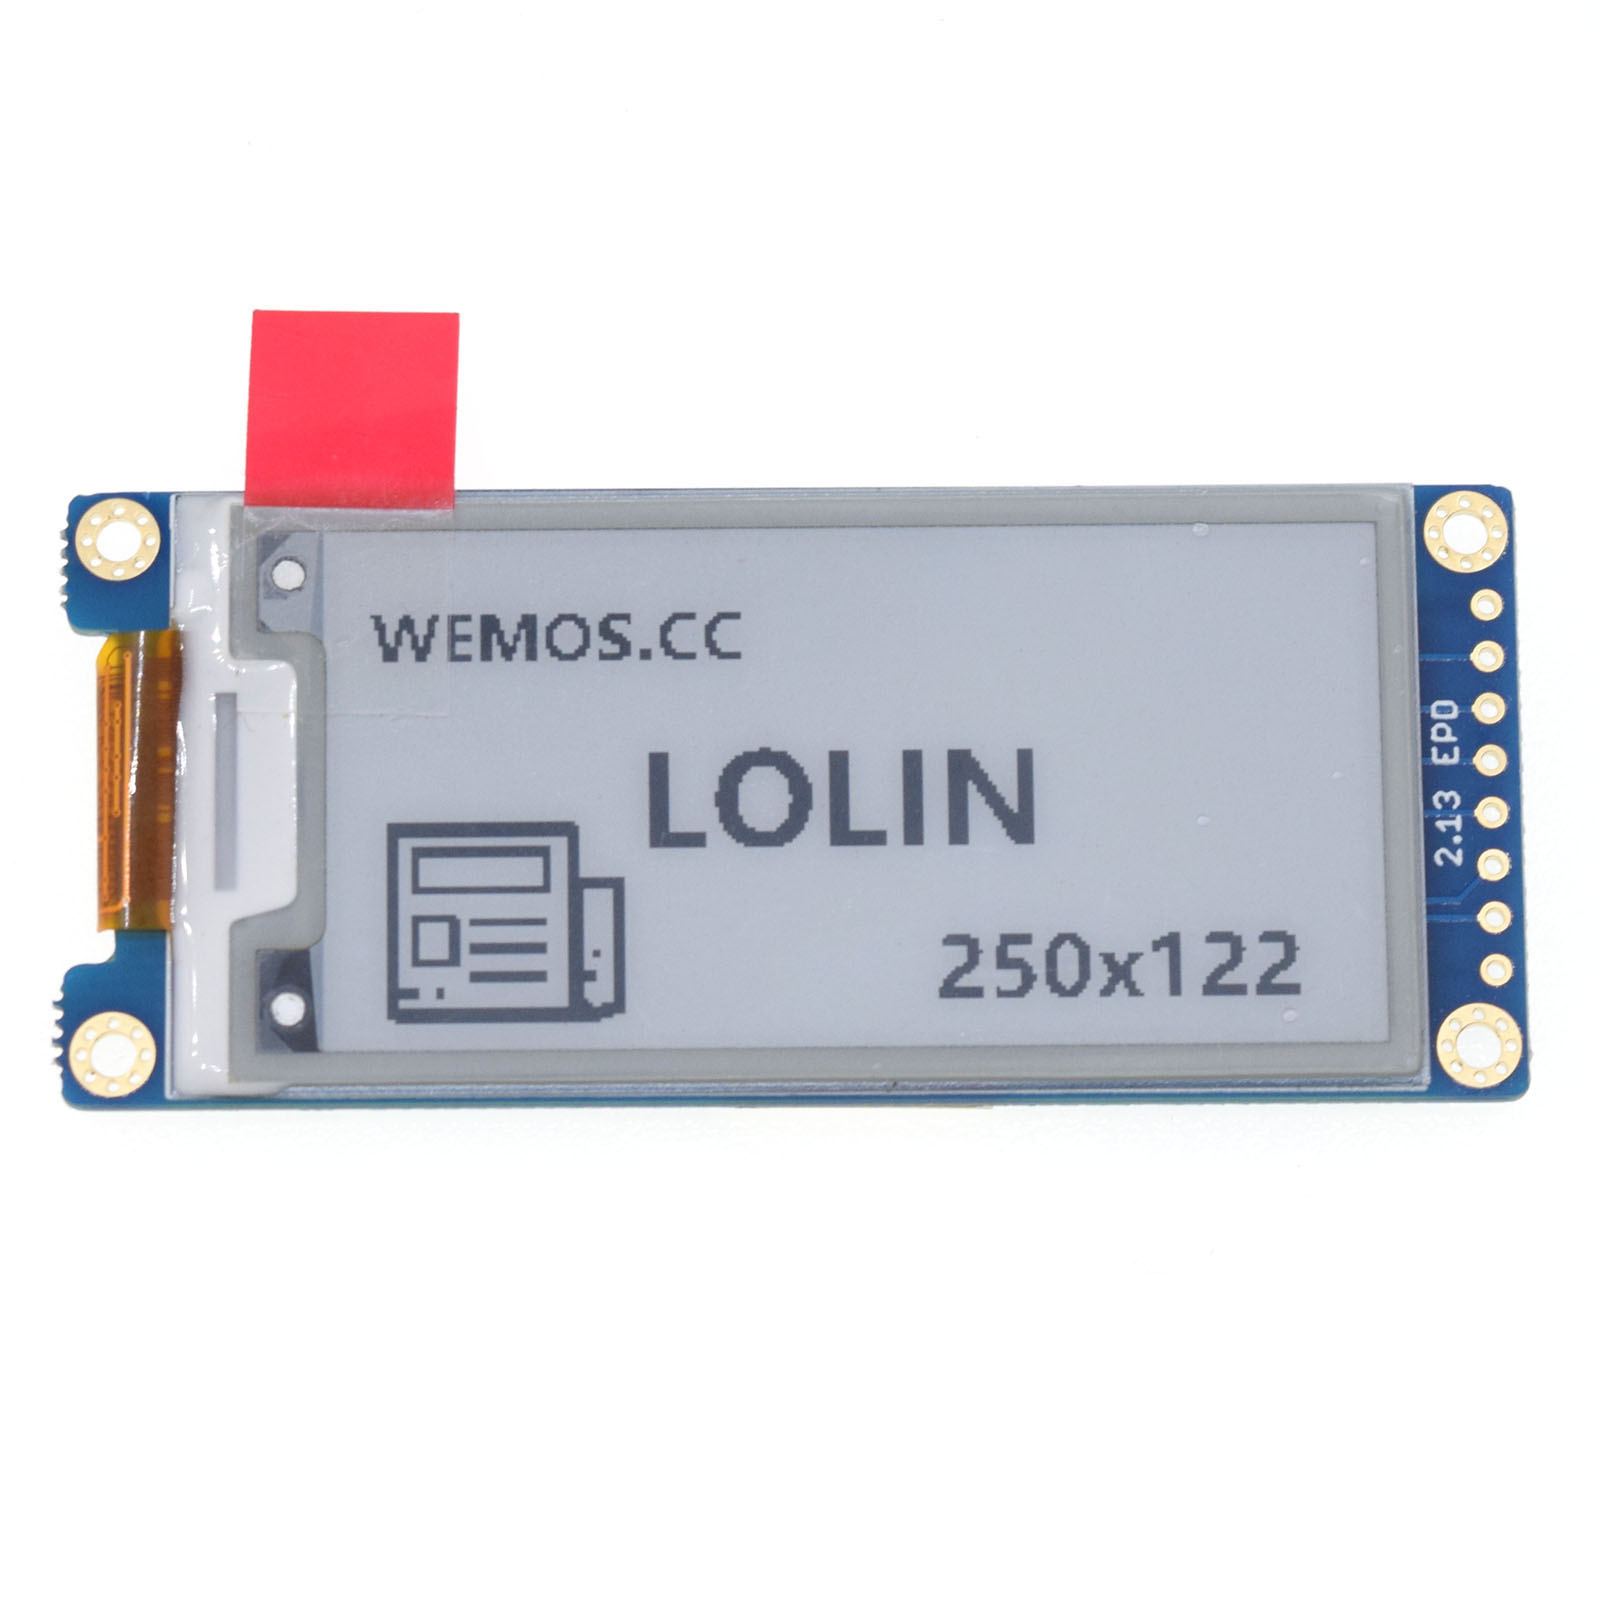 ePaper 2.13 Shield V1.0.0 for LOLIN (WEMOS) D1 mini D32   2.13 inch 250X122 SPI ePaper/eInk module IL3897-in Integrated Circuits from Electronic Components & Supplies